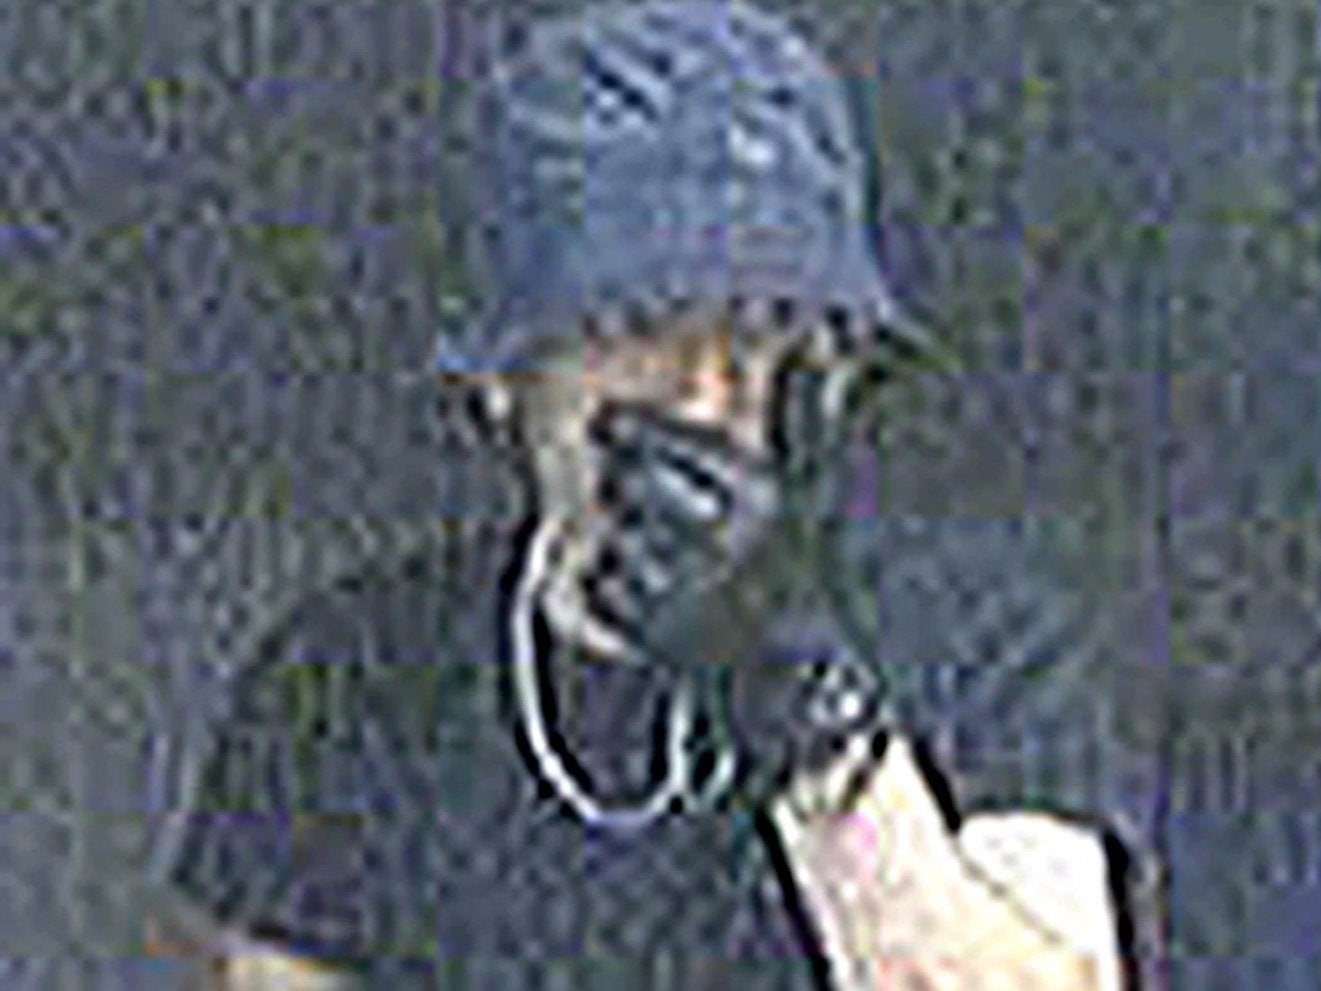 'Wimbledon Prowler' who stole £500,000-worth of loot from London homes unmasked as Kosovan chip shop owner